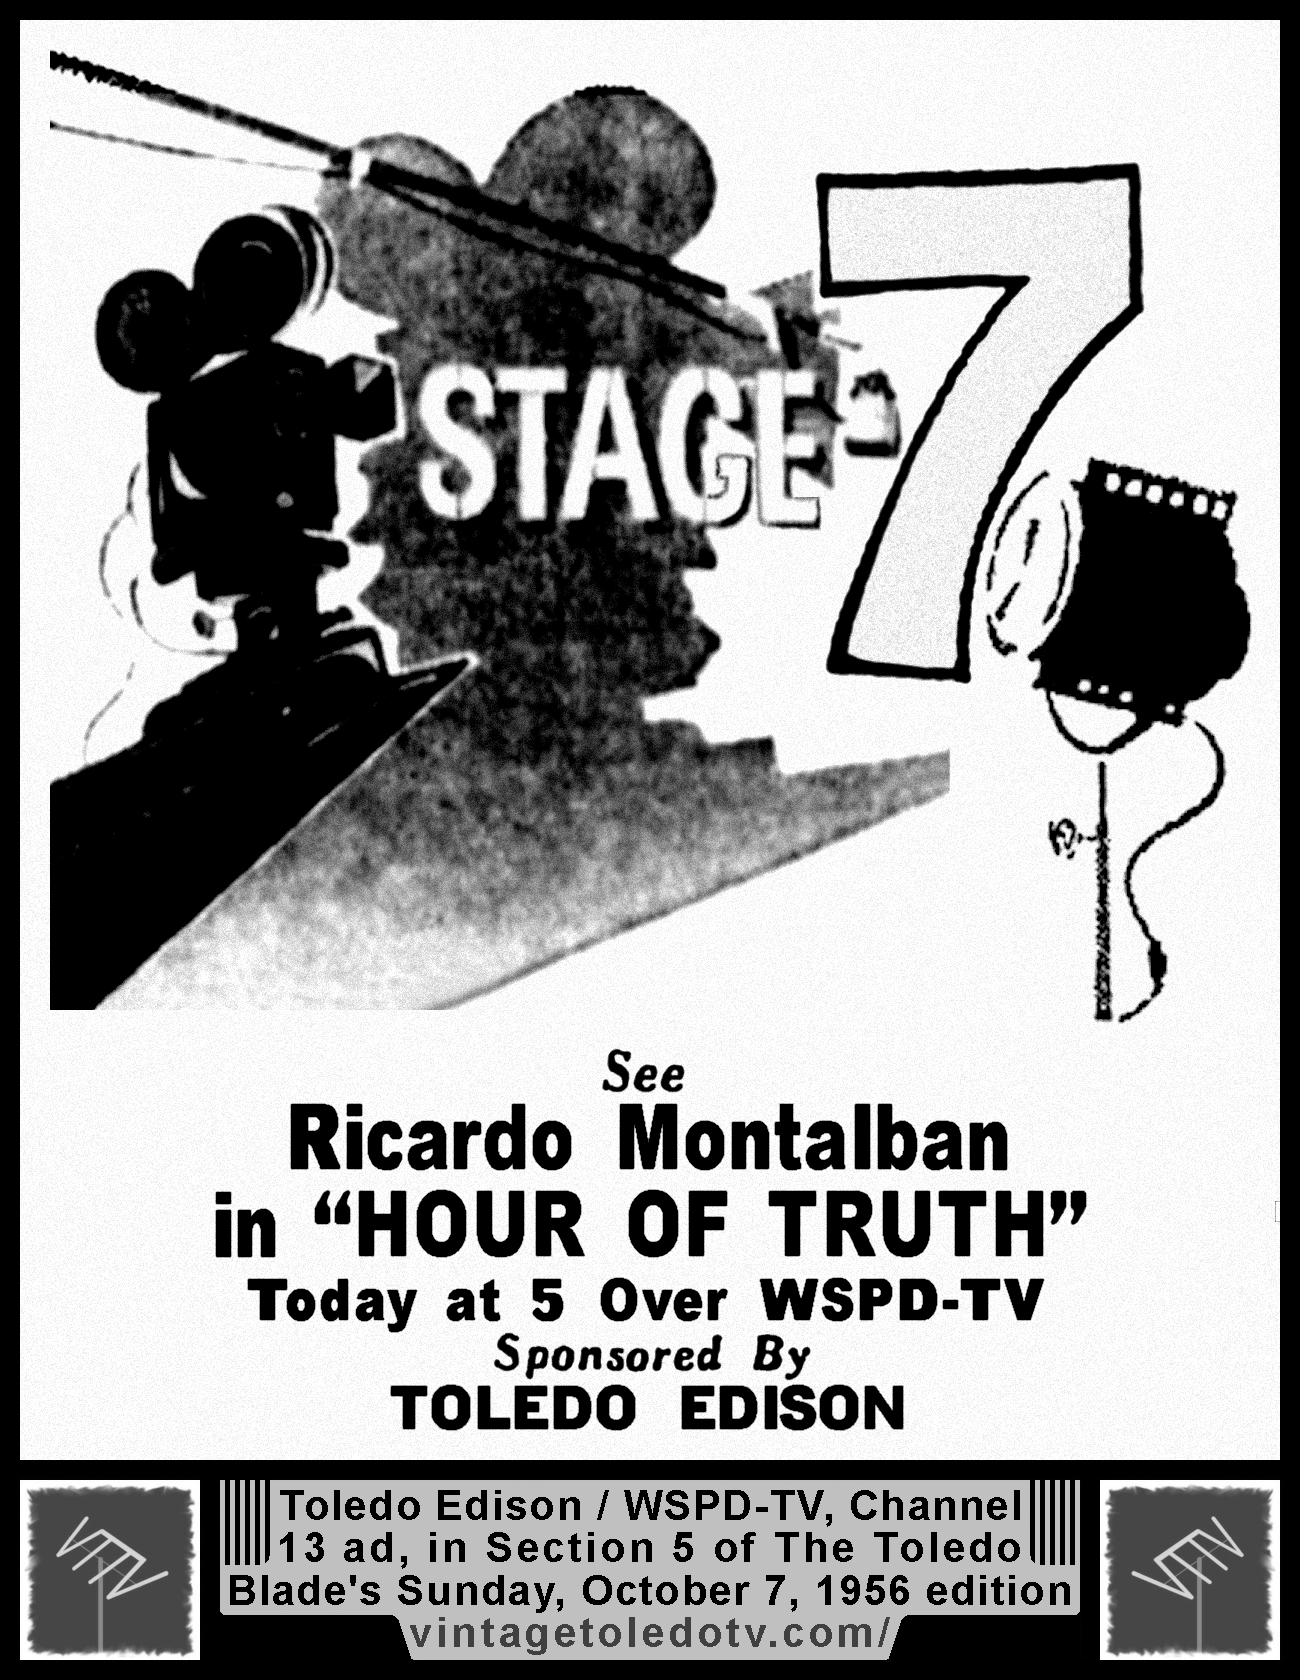 print ads for tv and radio shows and other Toledo-related ads